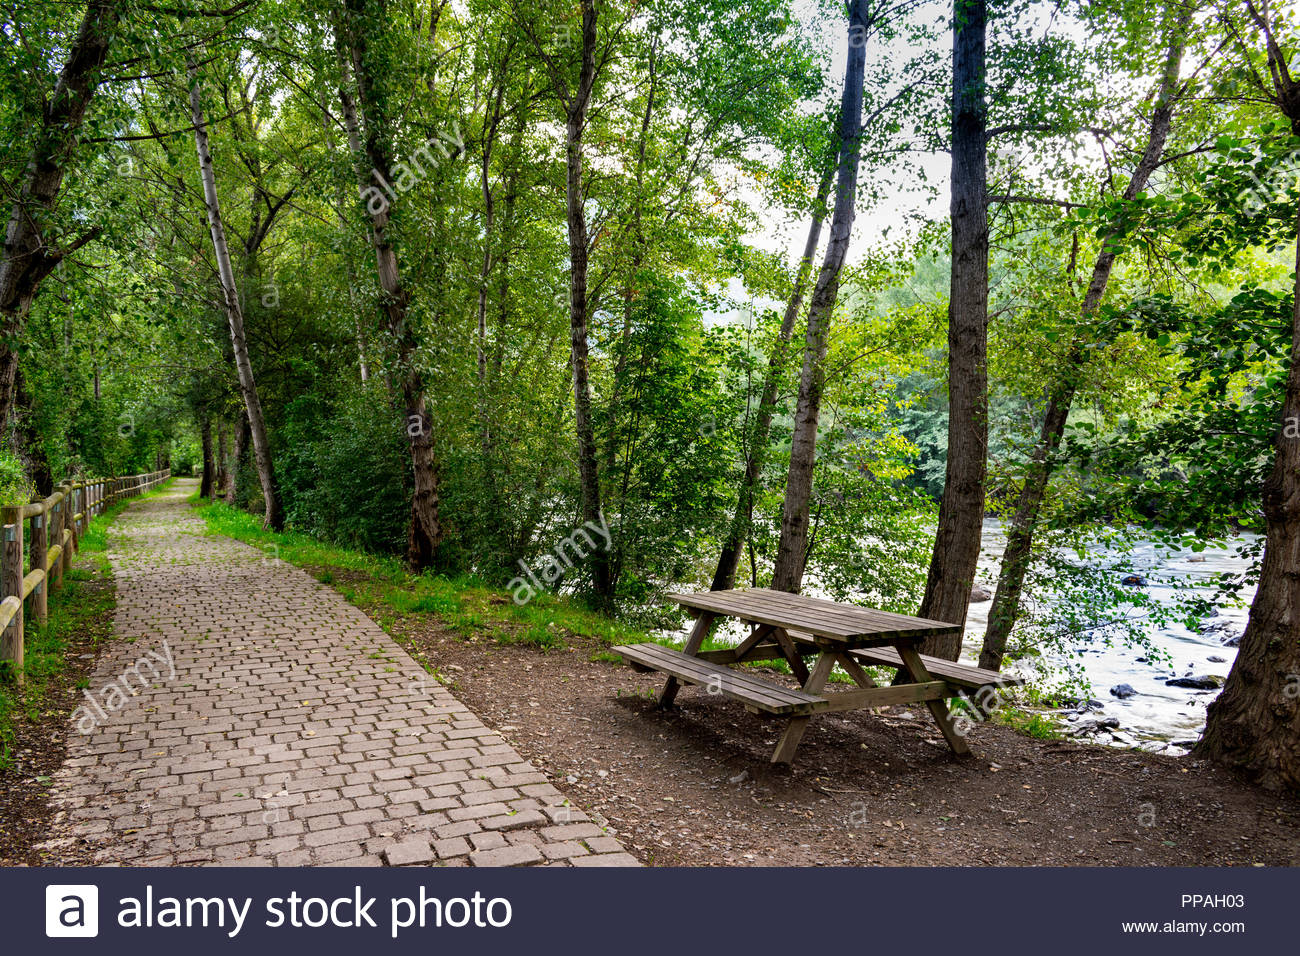 Wondrous Picnic Table And Bench In A Mountain Path Next To The River Machost Co Dining Chair Design Ideas Machostcouk